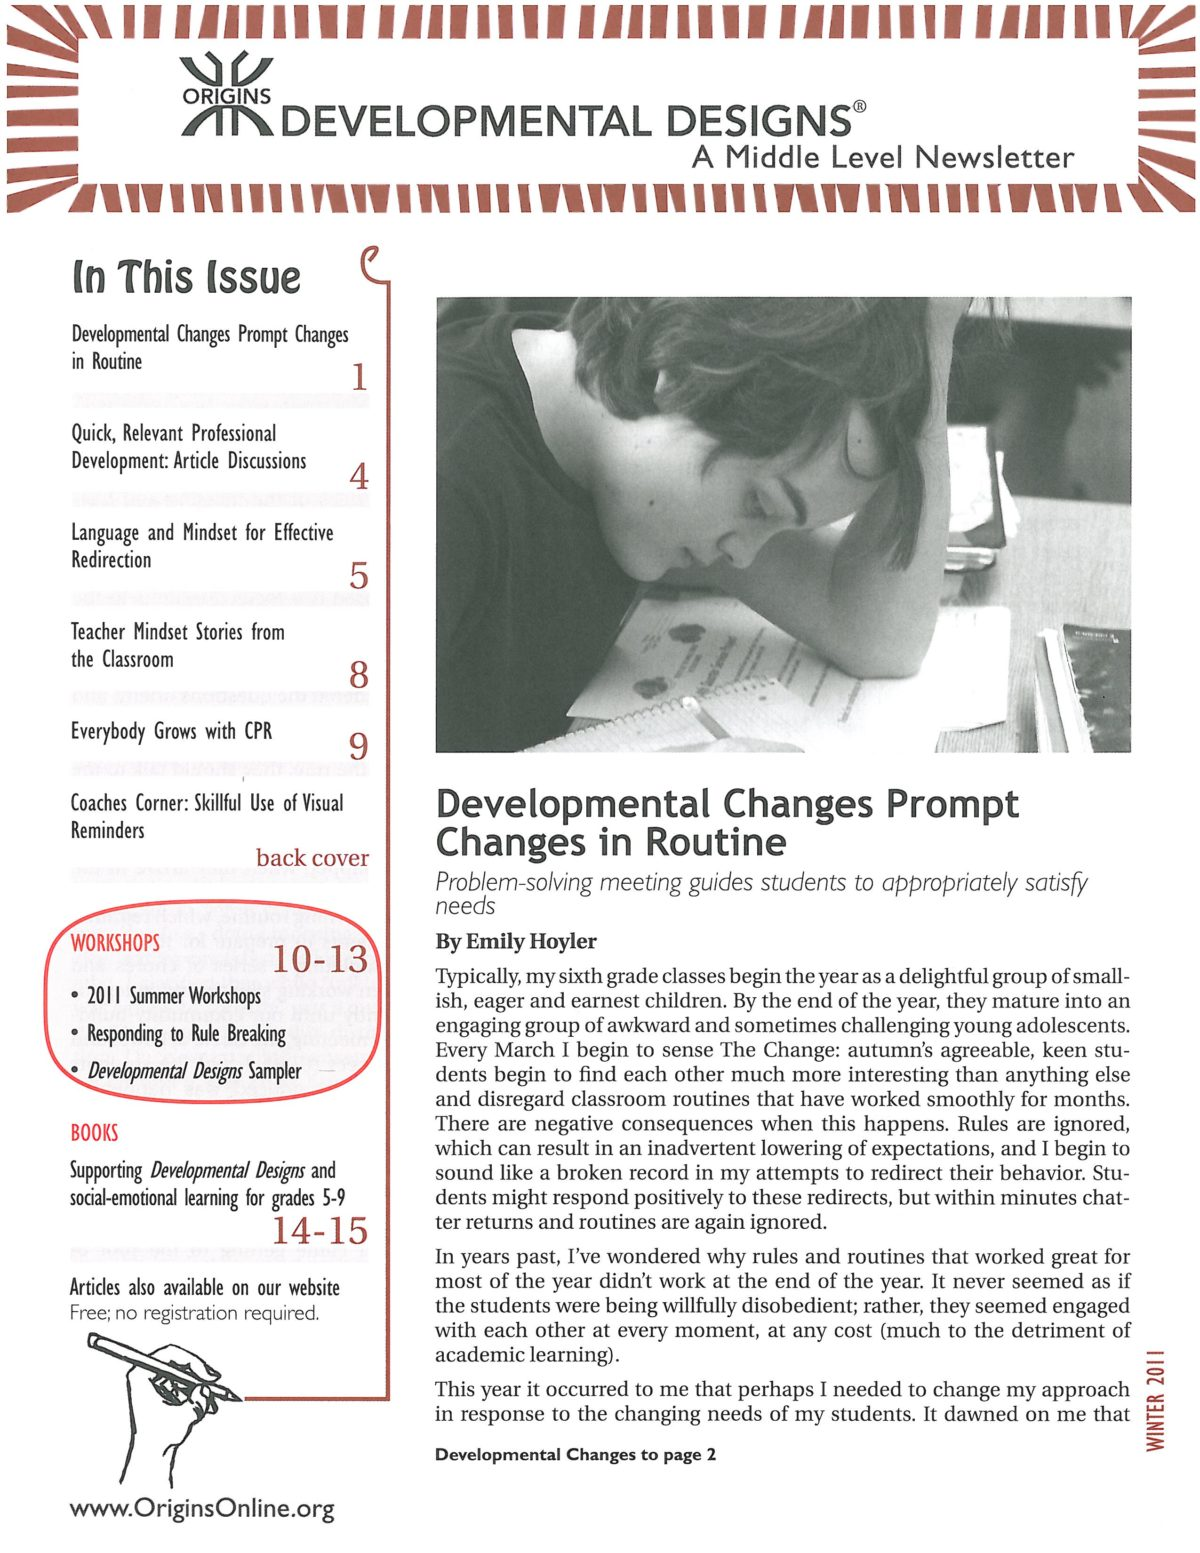 Developmental Designs Newsletter, Winter 2011